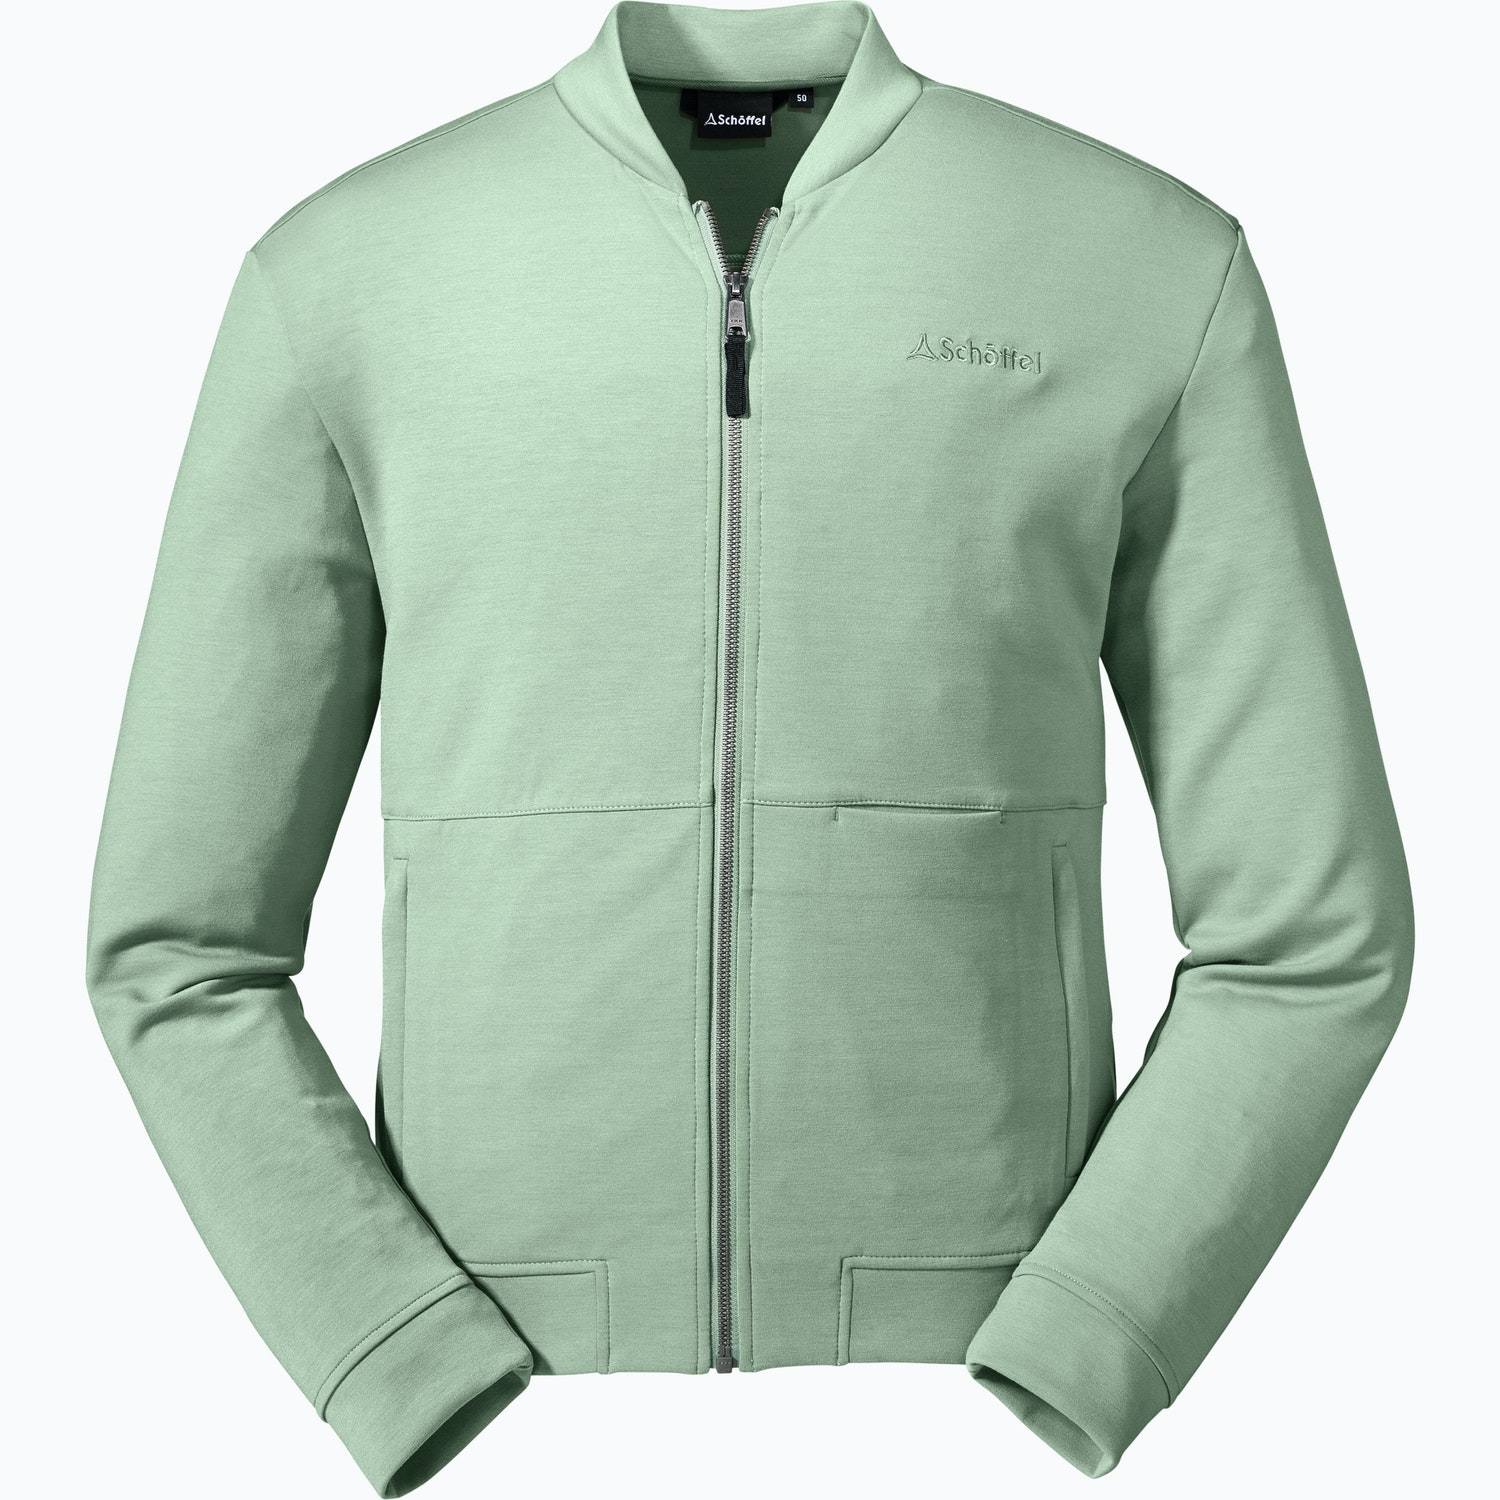 Fleece Jacket Stockport M